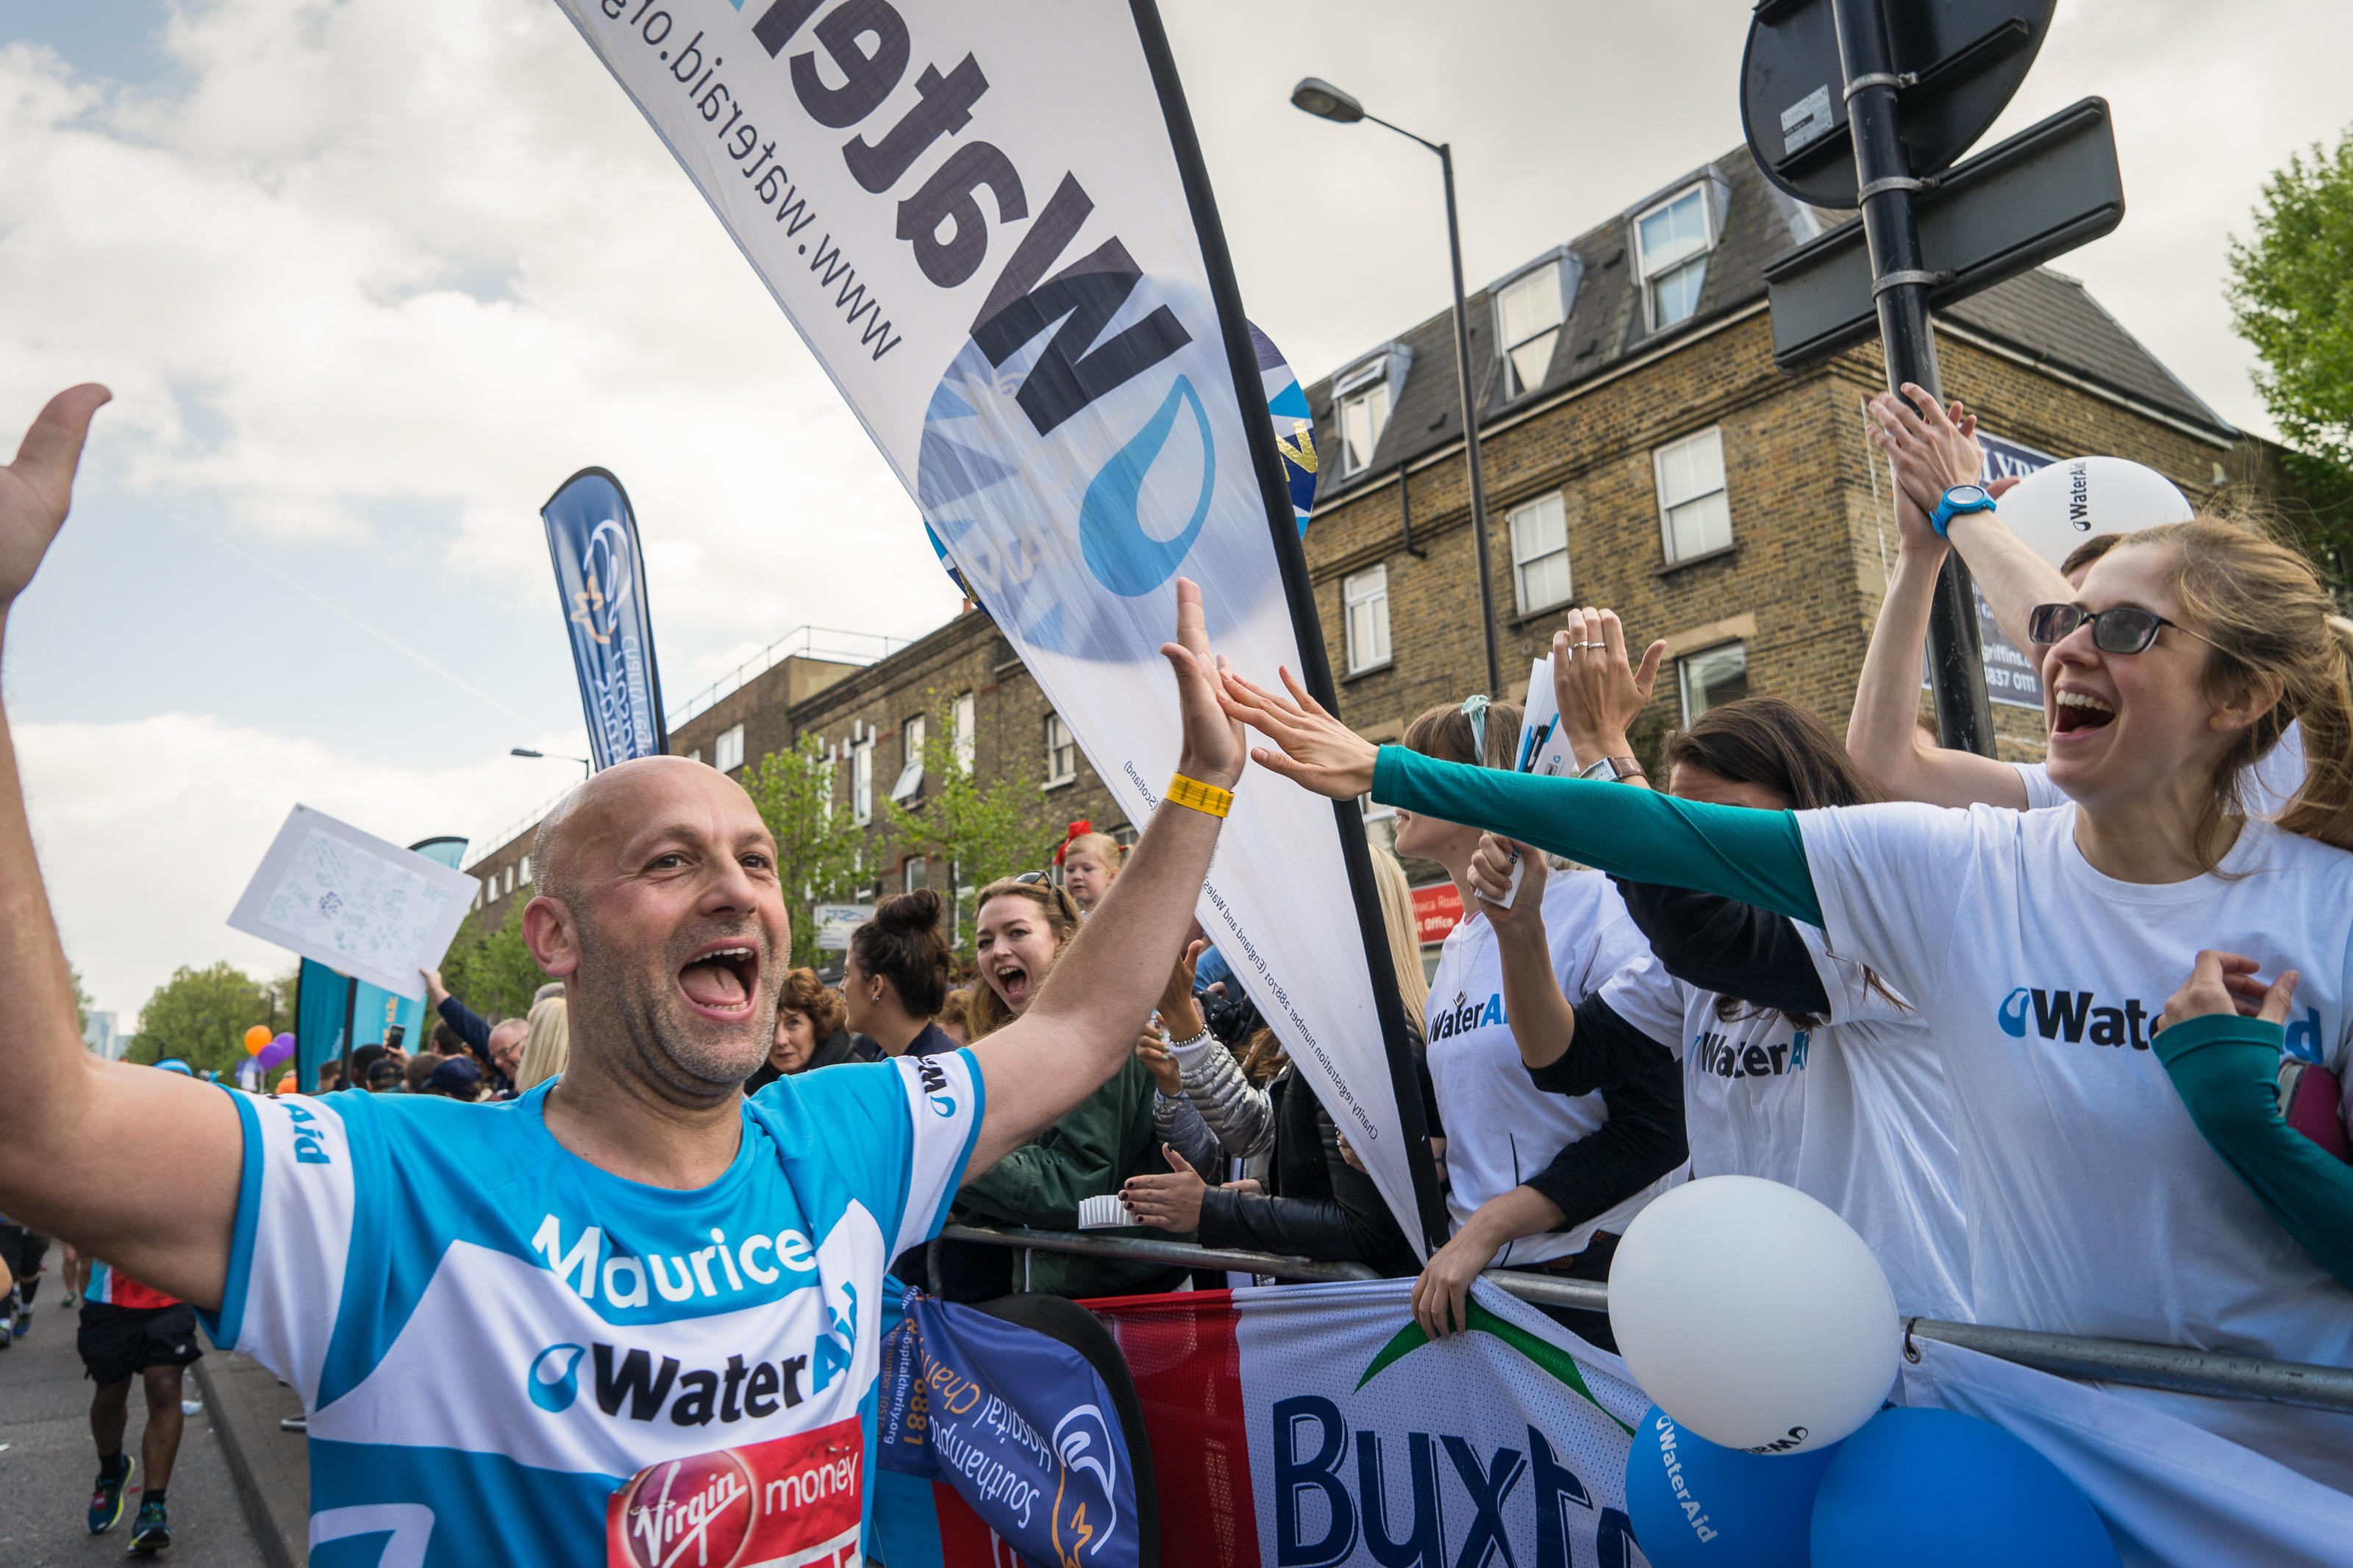 WaterAid runner being cheered on by supporters in the Virgin London Marathon, April 2017